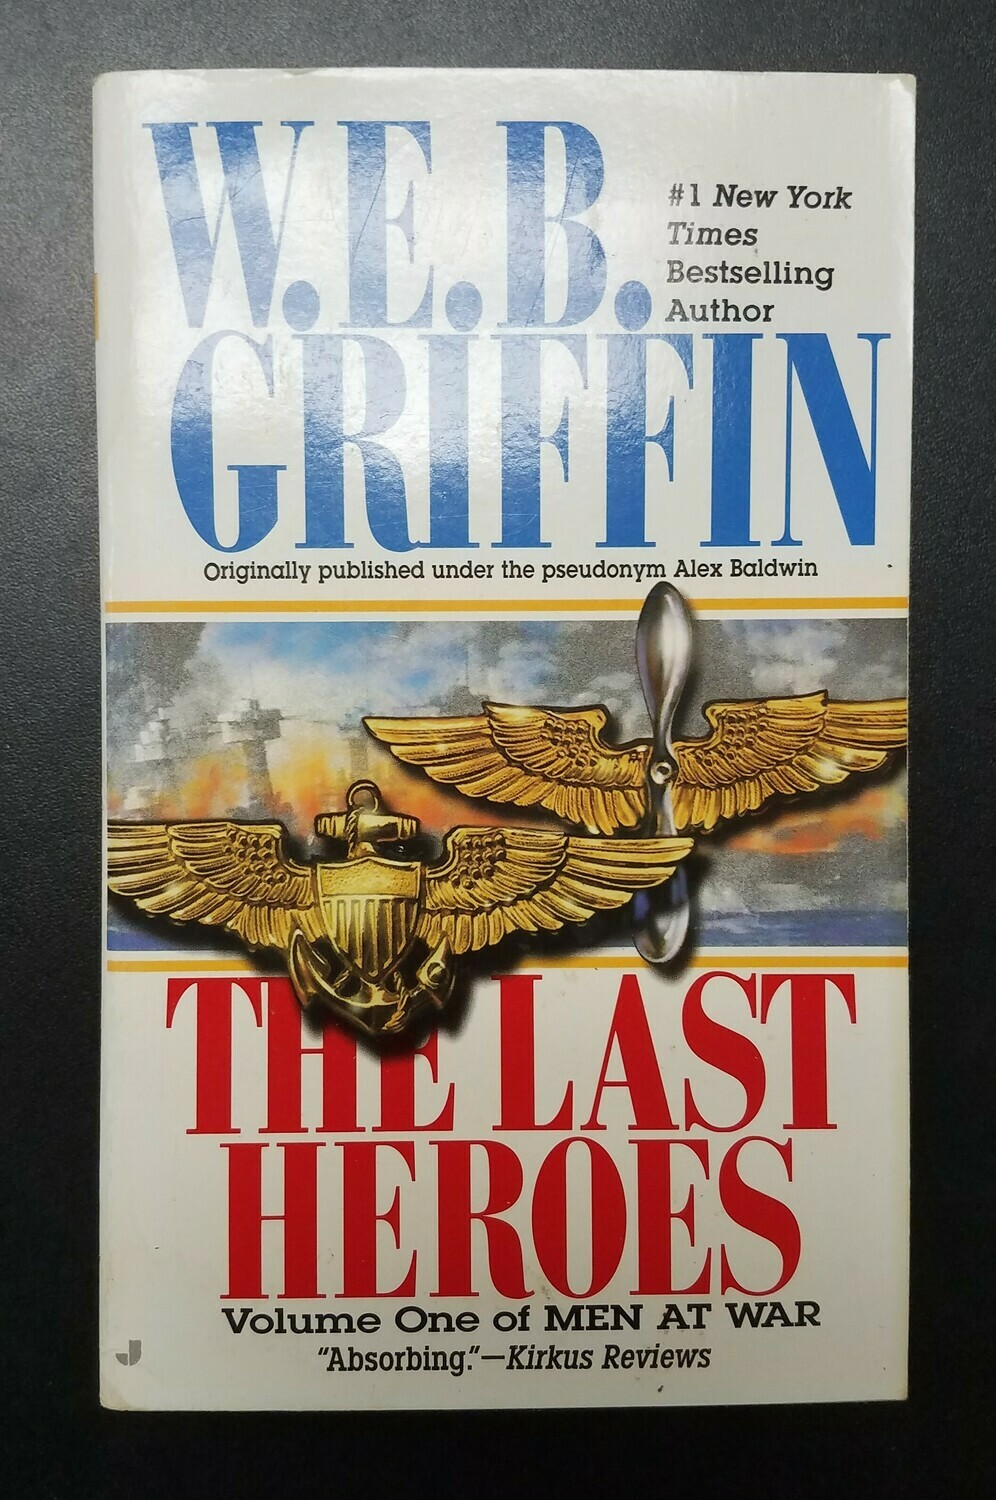 The Last Heroes - Vol. 1: Men at War by W.E.B. Griffin